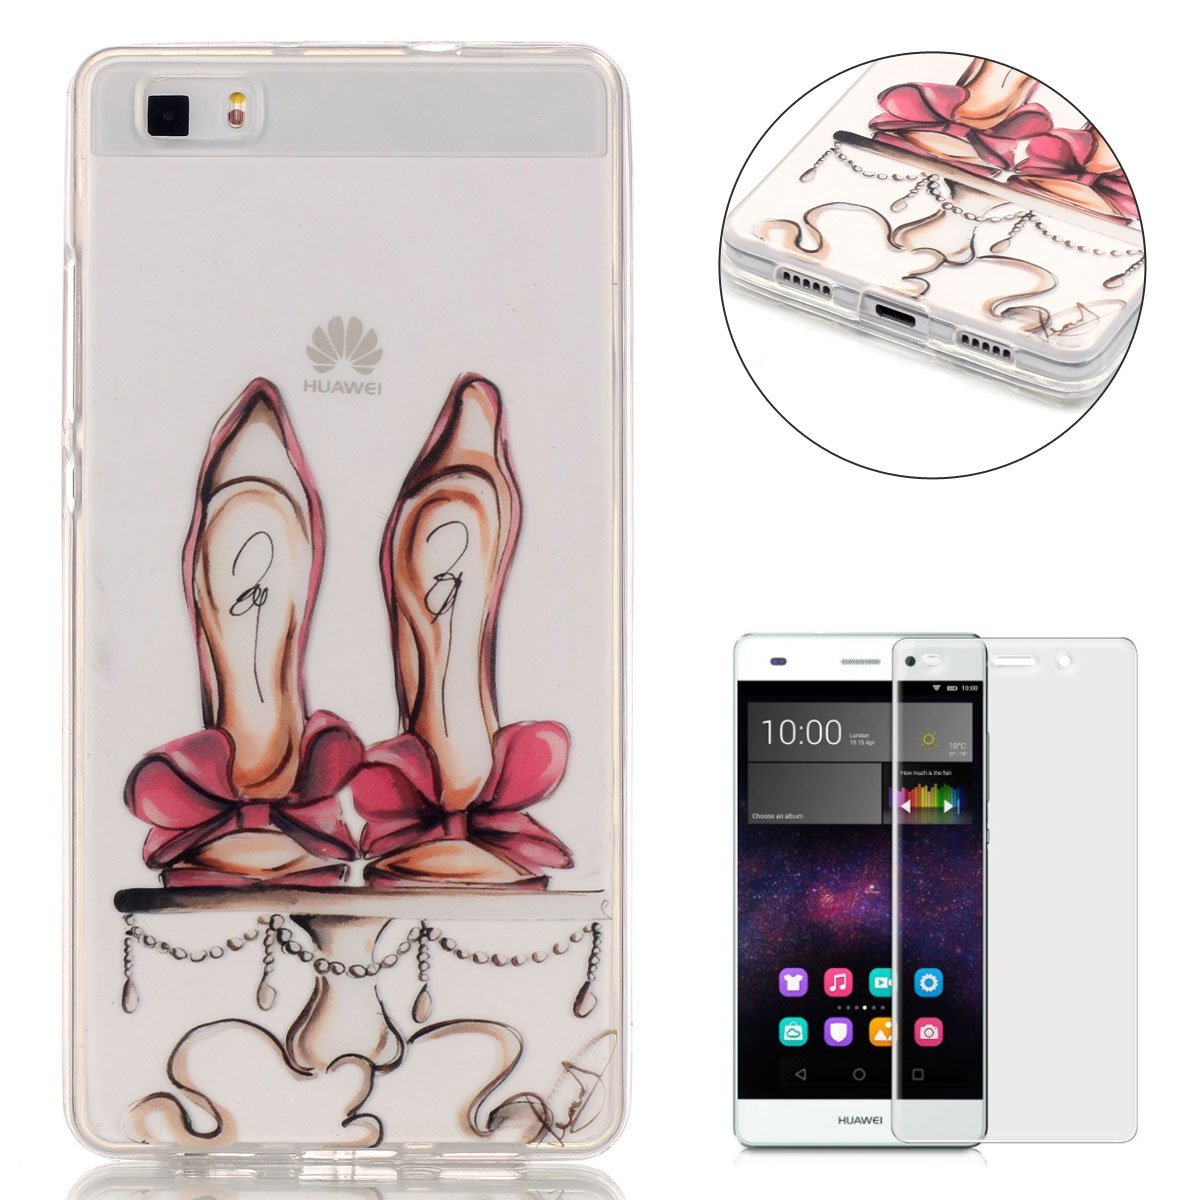 CaseHome For HUAWEI P8 Lite silicone TPU Case Shock Proof Durable [Free Screen Protector]